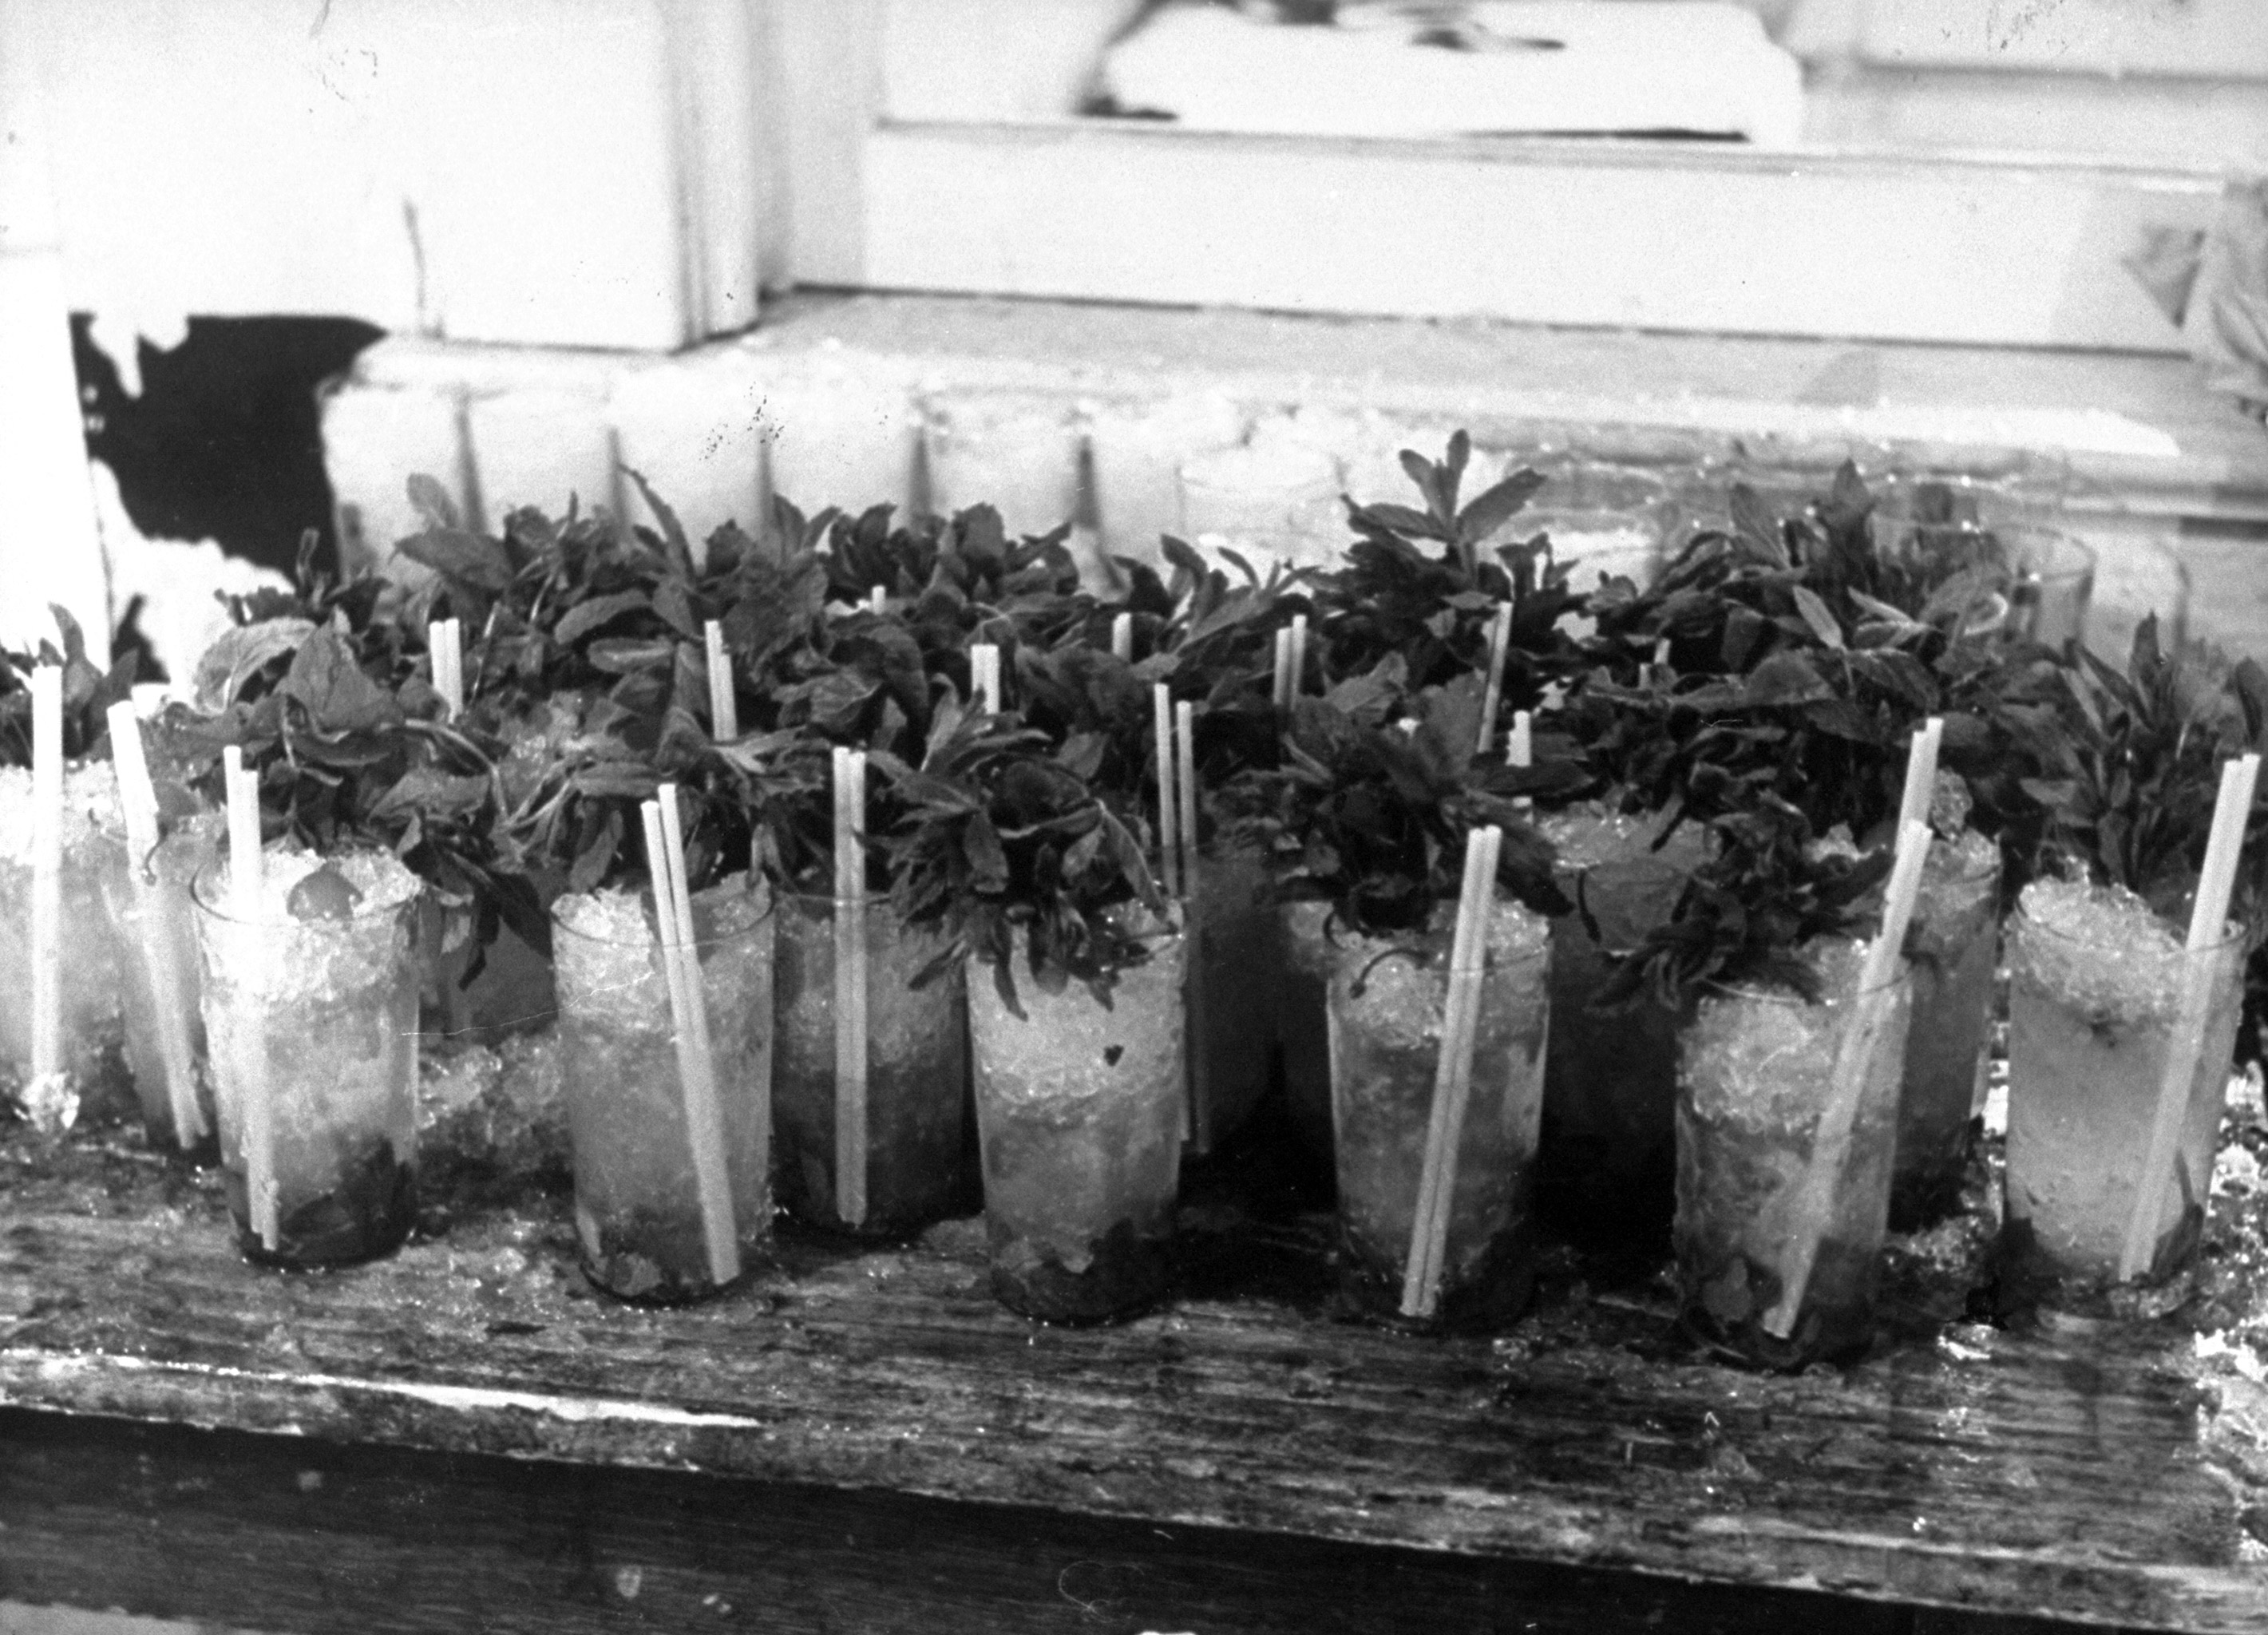 Caption from LIFE. Tall glasses holding mint juleps, consumed by Kentucky Colonels at the annual Kentucky Colonels Julep Reception held at Louisville's Kentucky Hotel day before the Derby, were pronounced incorrect by the private party guests shown elsewhere on these pages who drank their mint juleps from silver mugs.